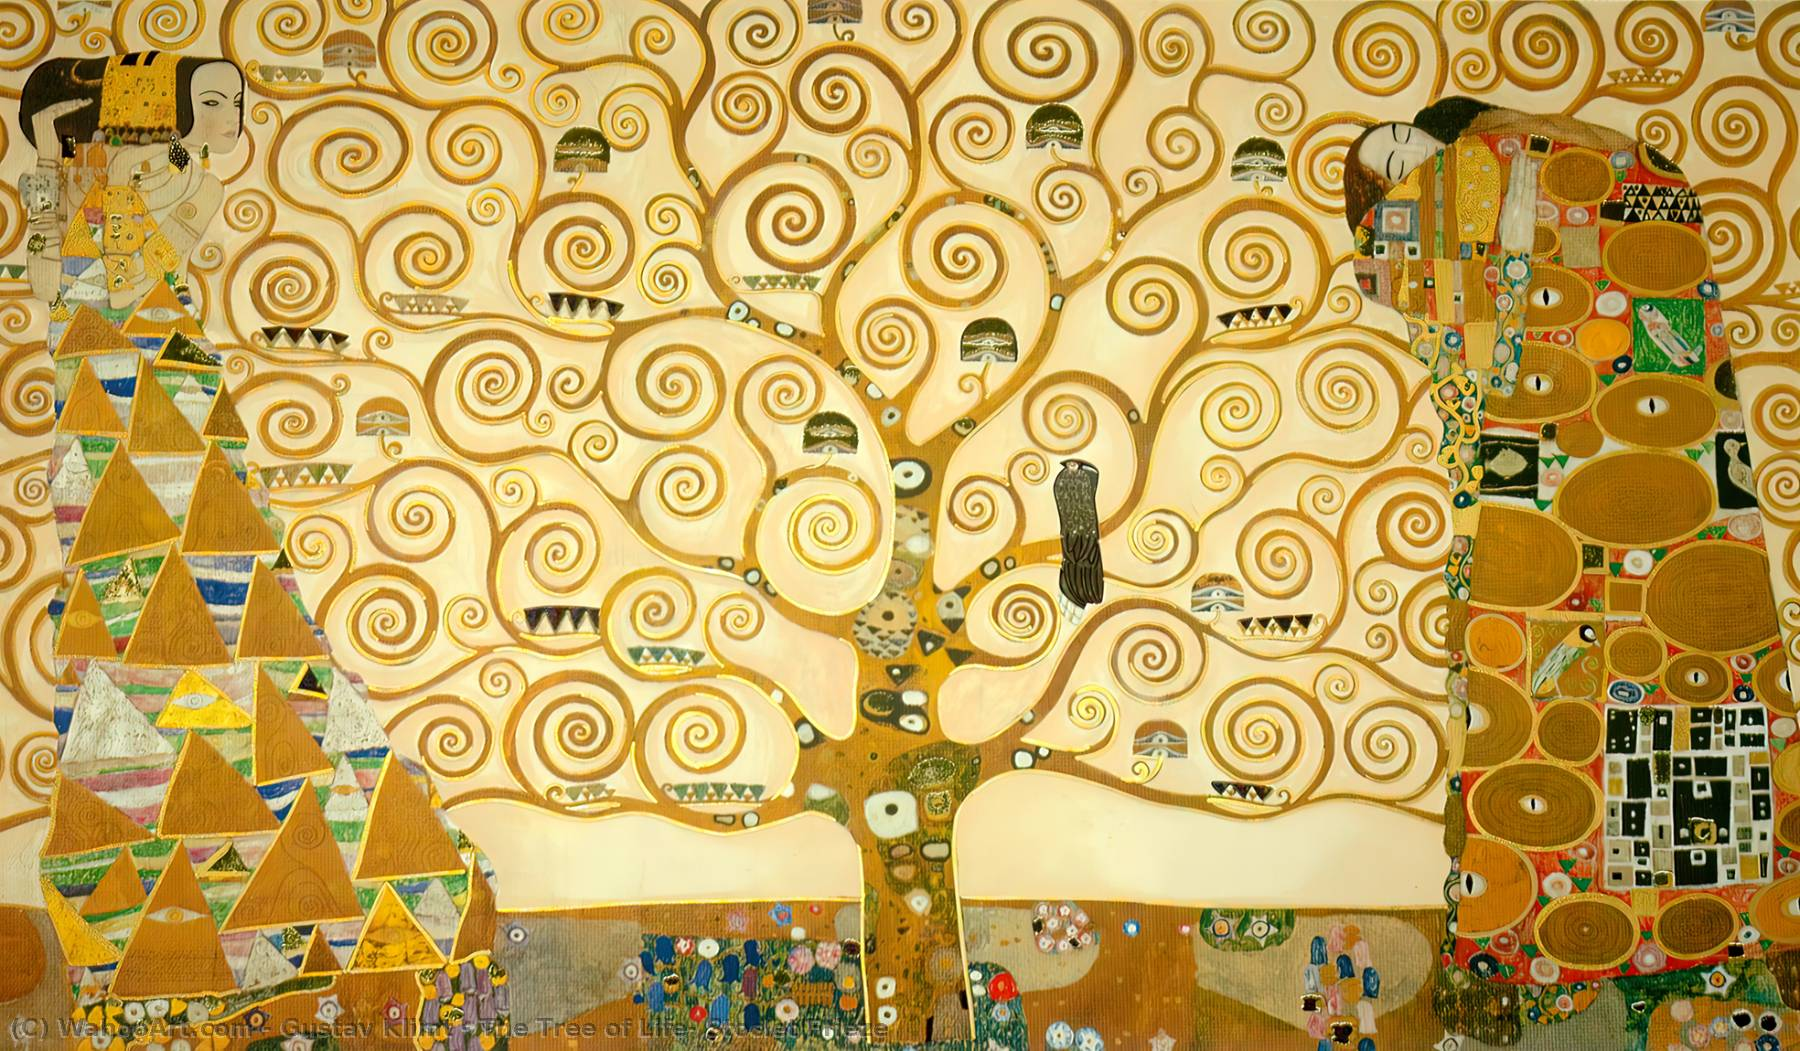 The Tree of Life, Stoclet Frieze, 1909 by Gustav Klimt (1862-1918, Austria)